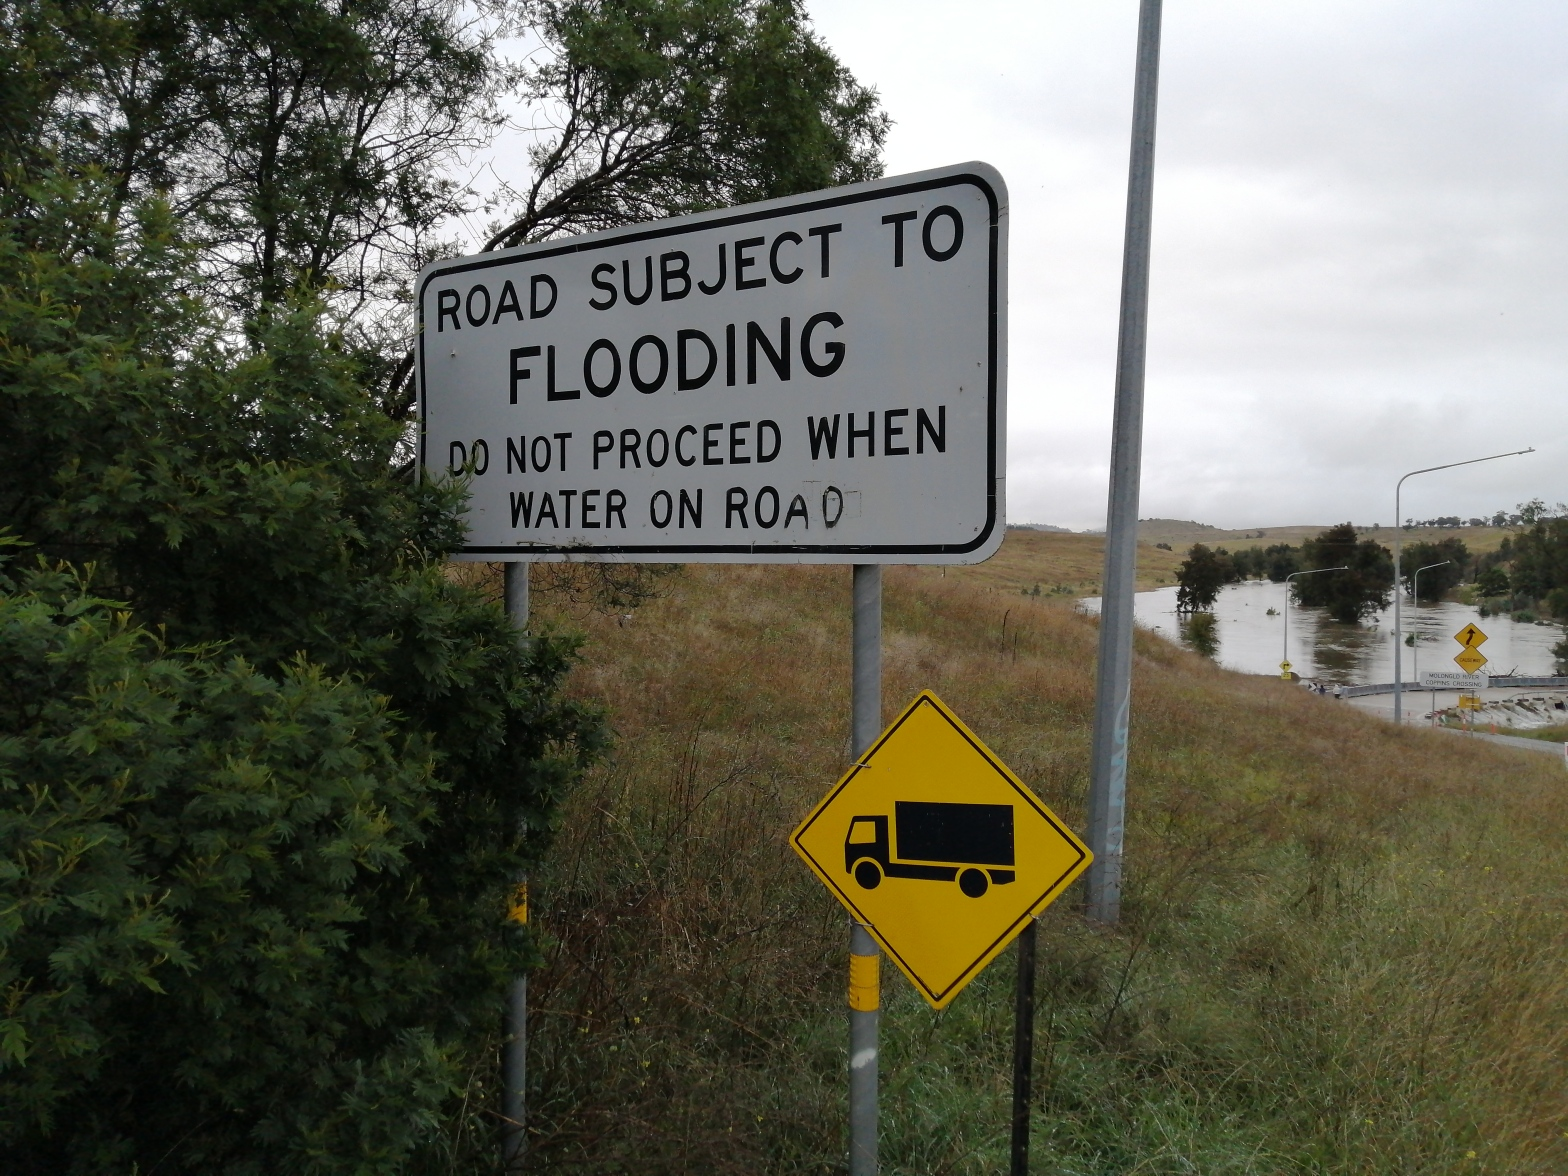 """""""Road subjected to flooding"""" sign. Flood water, Coppins Crossing, Molonglo River, Molonglo Valley, 24 March 2021"""